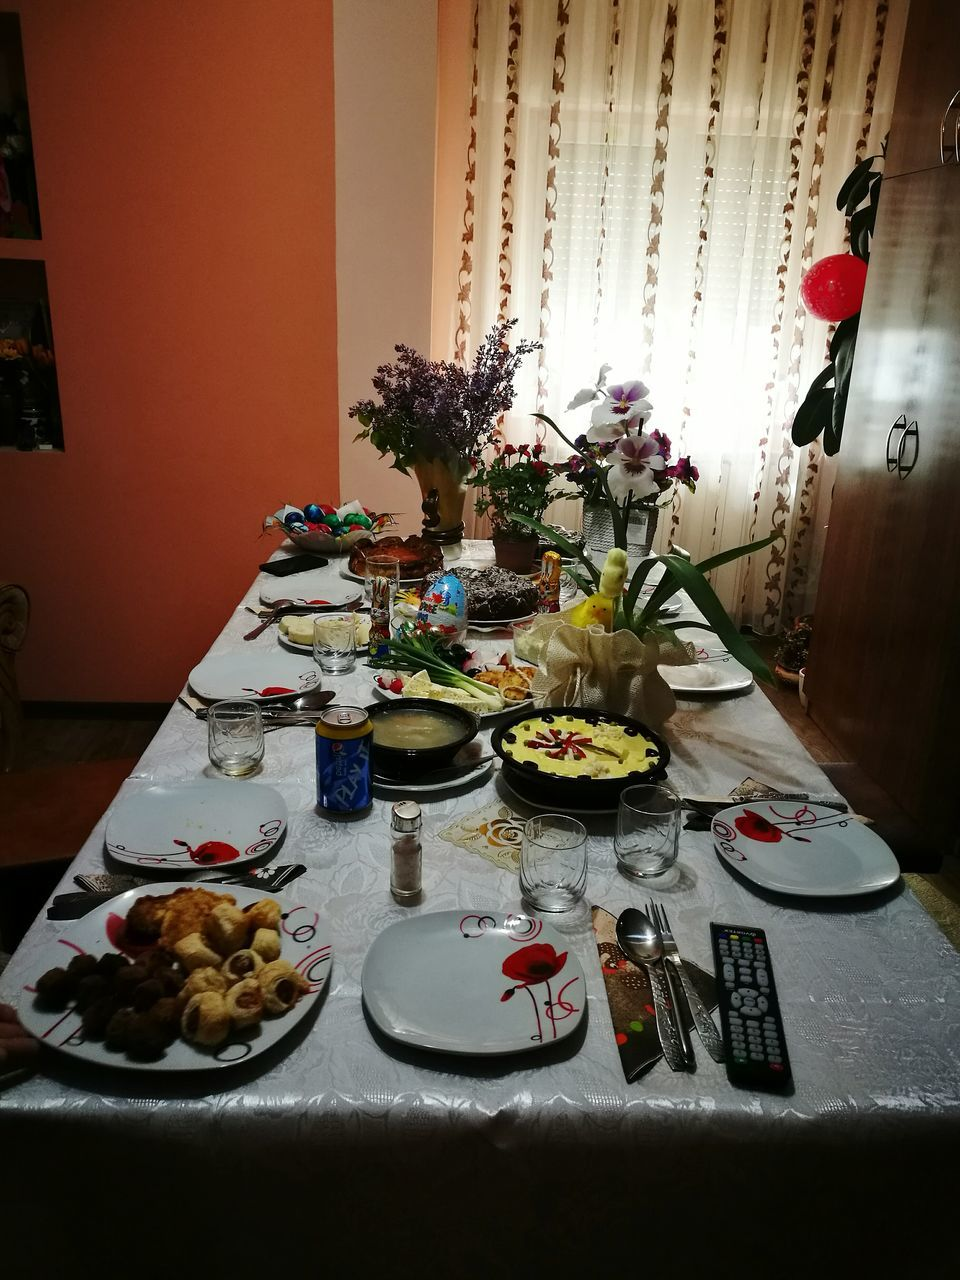 plate, table, indoors, food and drink, food, serving size, dining table, vase, flower, tablecloth, home interior, healthy eating, breakfast, no people, cake, dining room, place setting, bowl, ready-to-eat, drink, freshness, sweet food, day